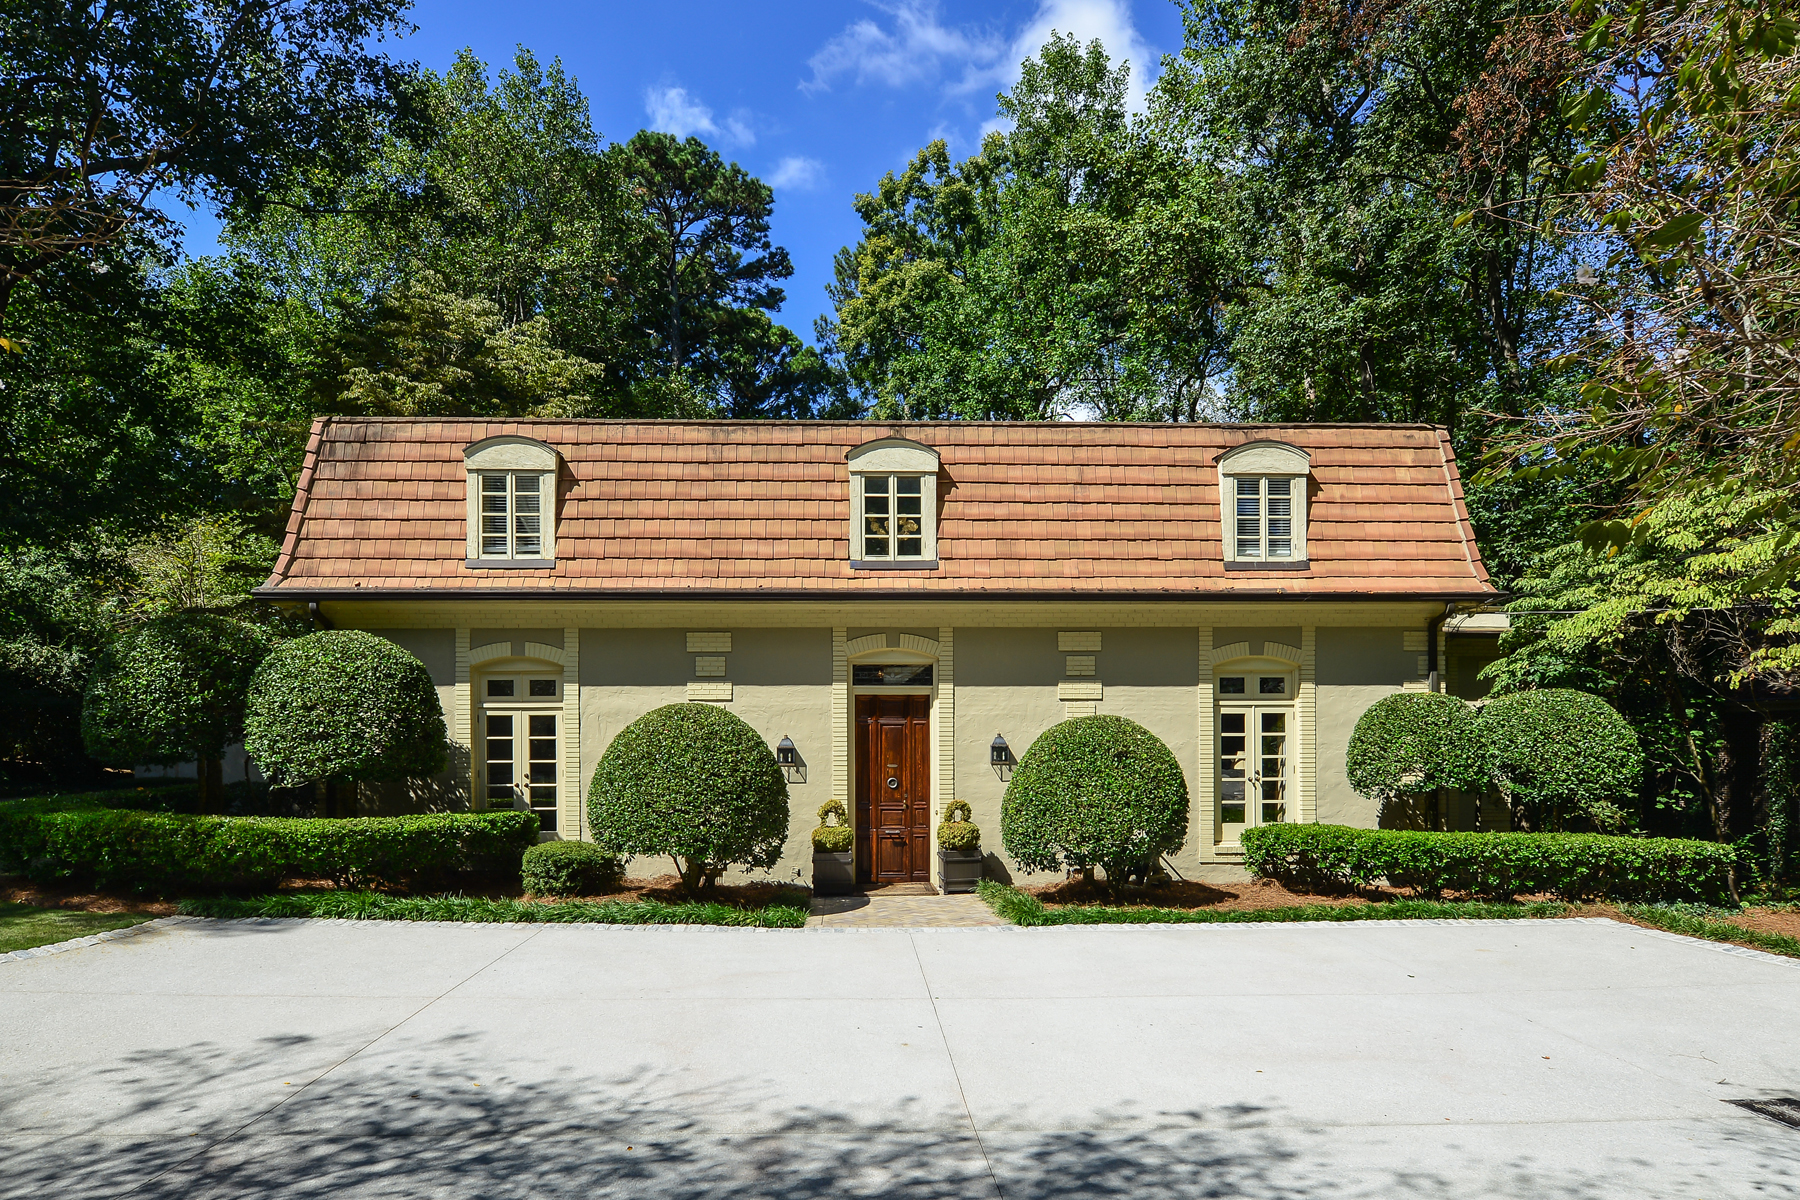 Single Family Home for Sale at Norman Askins Renovation Originally Modeled After Marie Antoinette's Paris Home 3872 Randall Ridge Road Buckhead, Atlanta, Georgia, 30327 United States